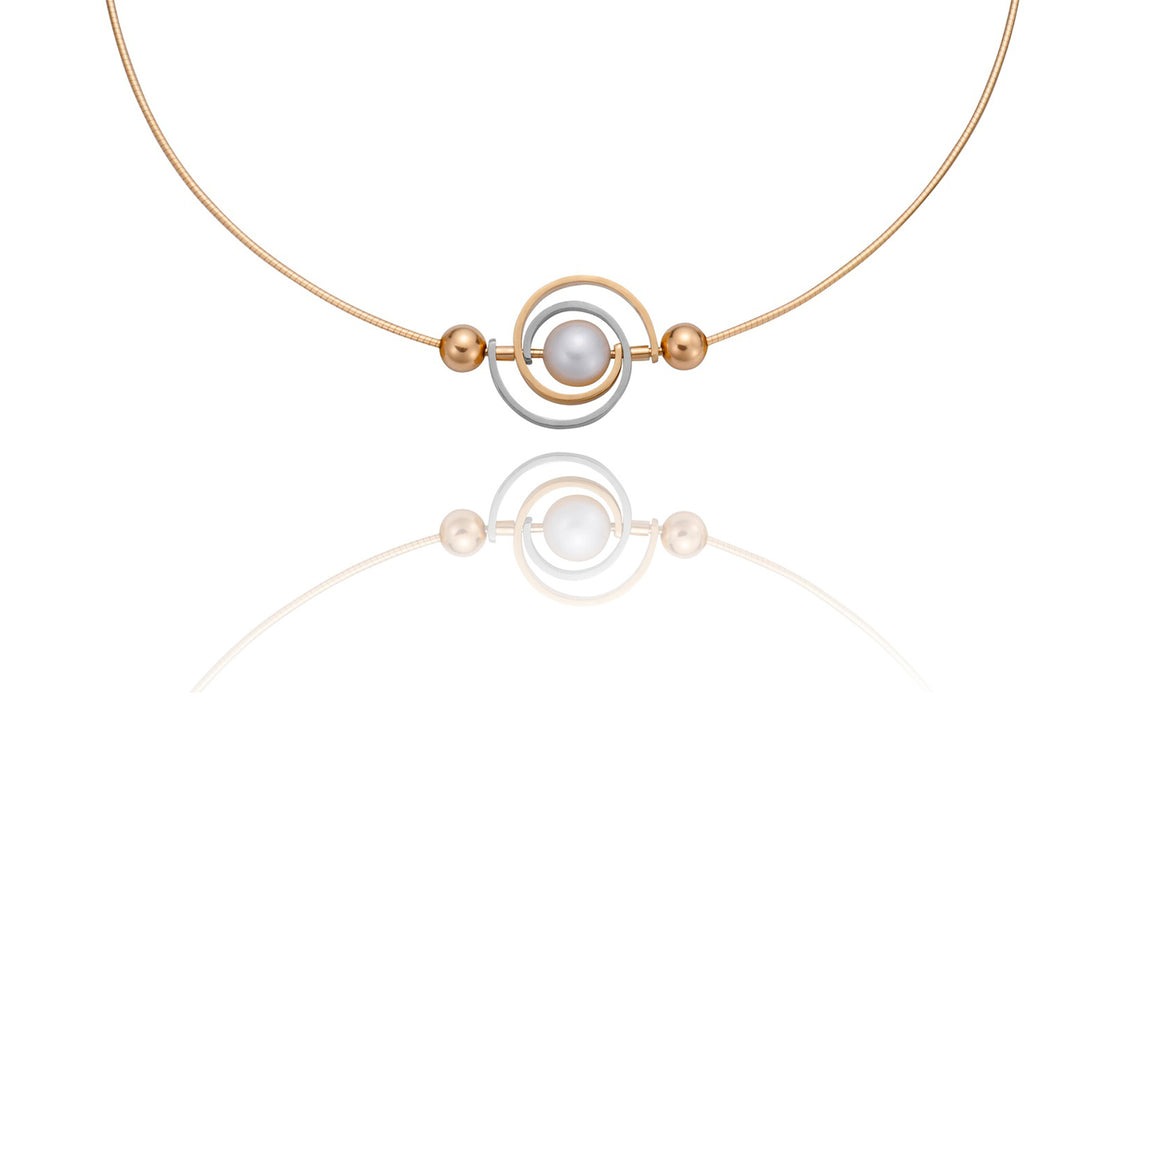 Single Spiral Orbit Necklace by Martha Seely